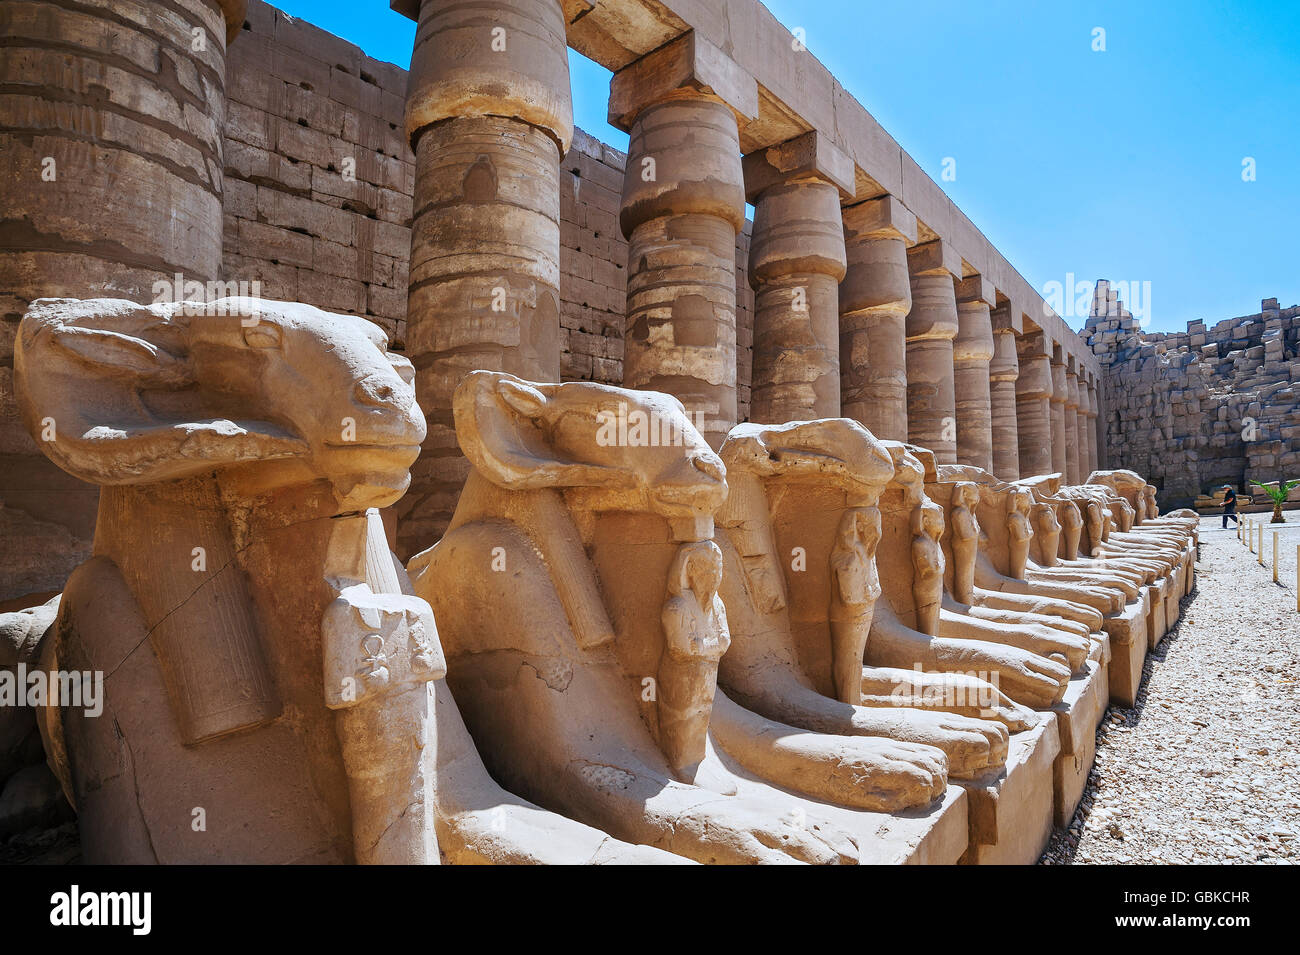 Avenue of ram-headed sphinxes at Karnak Temple, Karnak, Luxor, Egypt - Stock Image